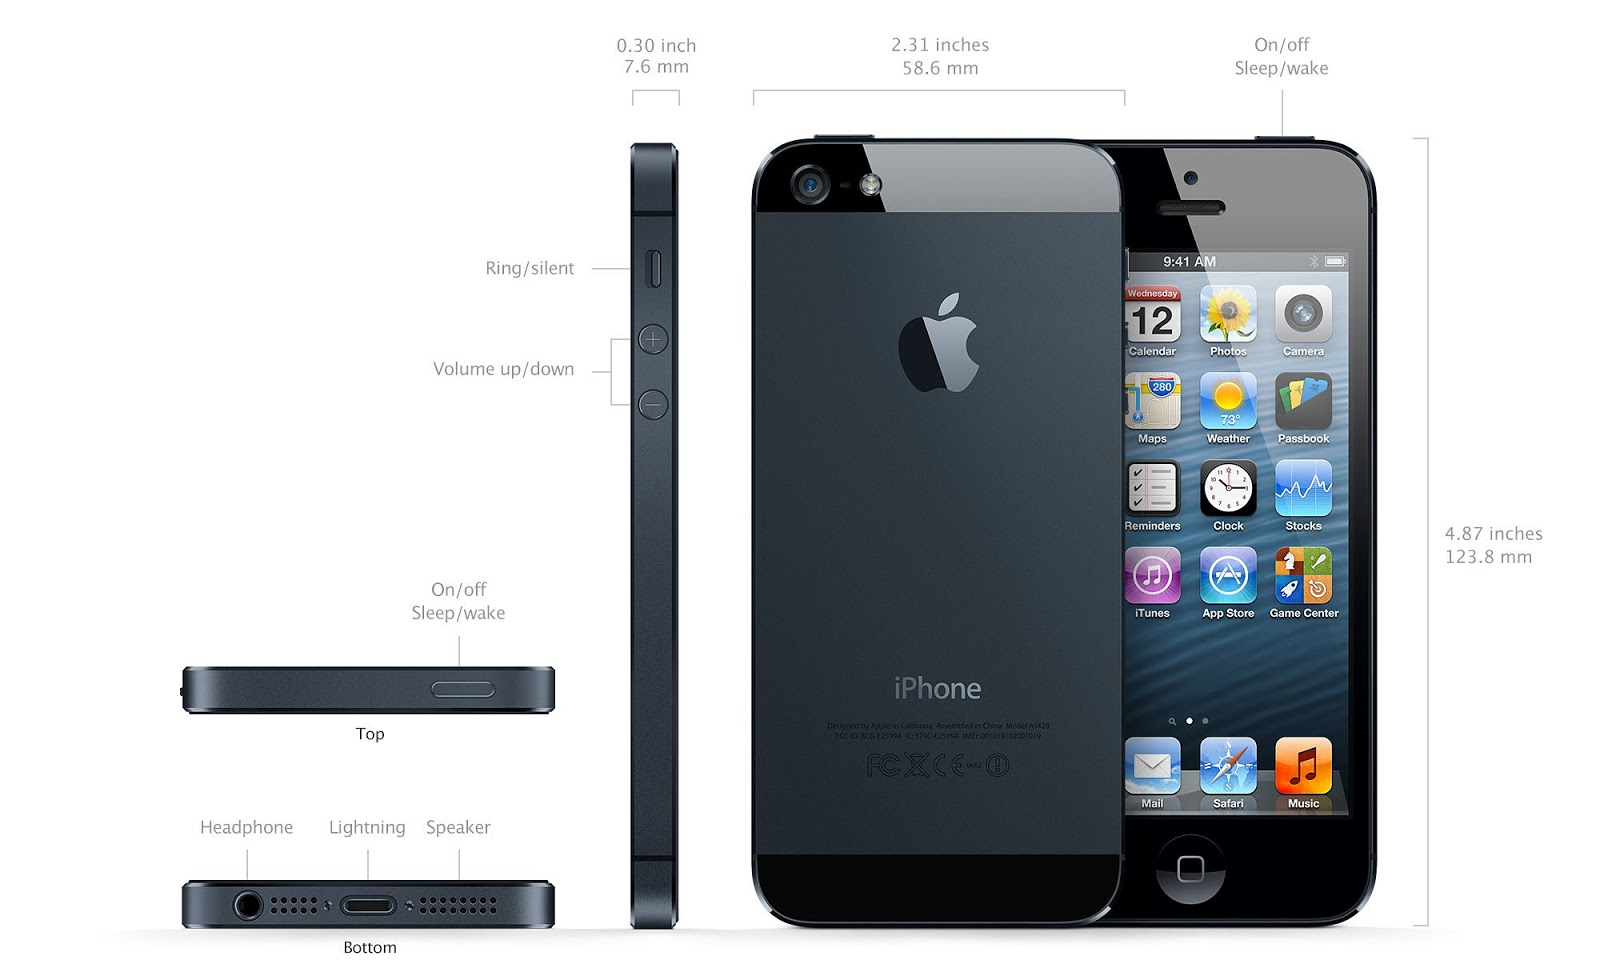 new mobile phone photos apple iphone 5 last photos and images. Black Bedroom Furniture Sets. Home Design Ideas